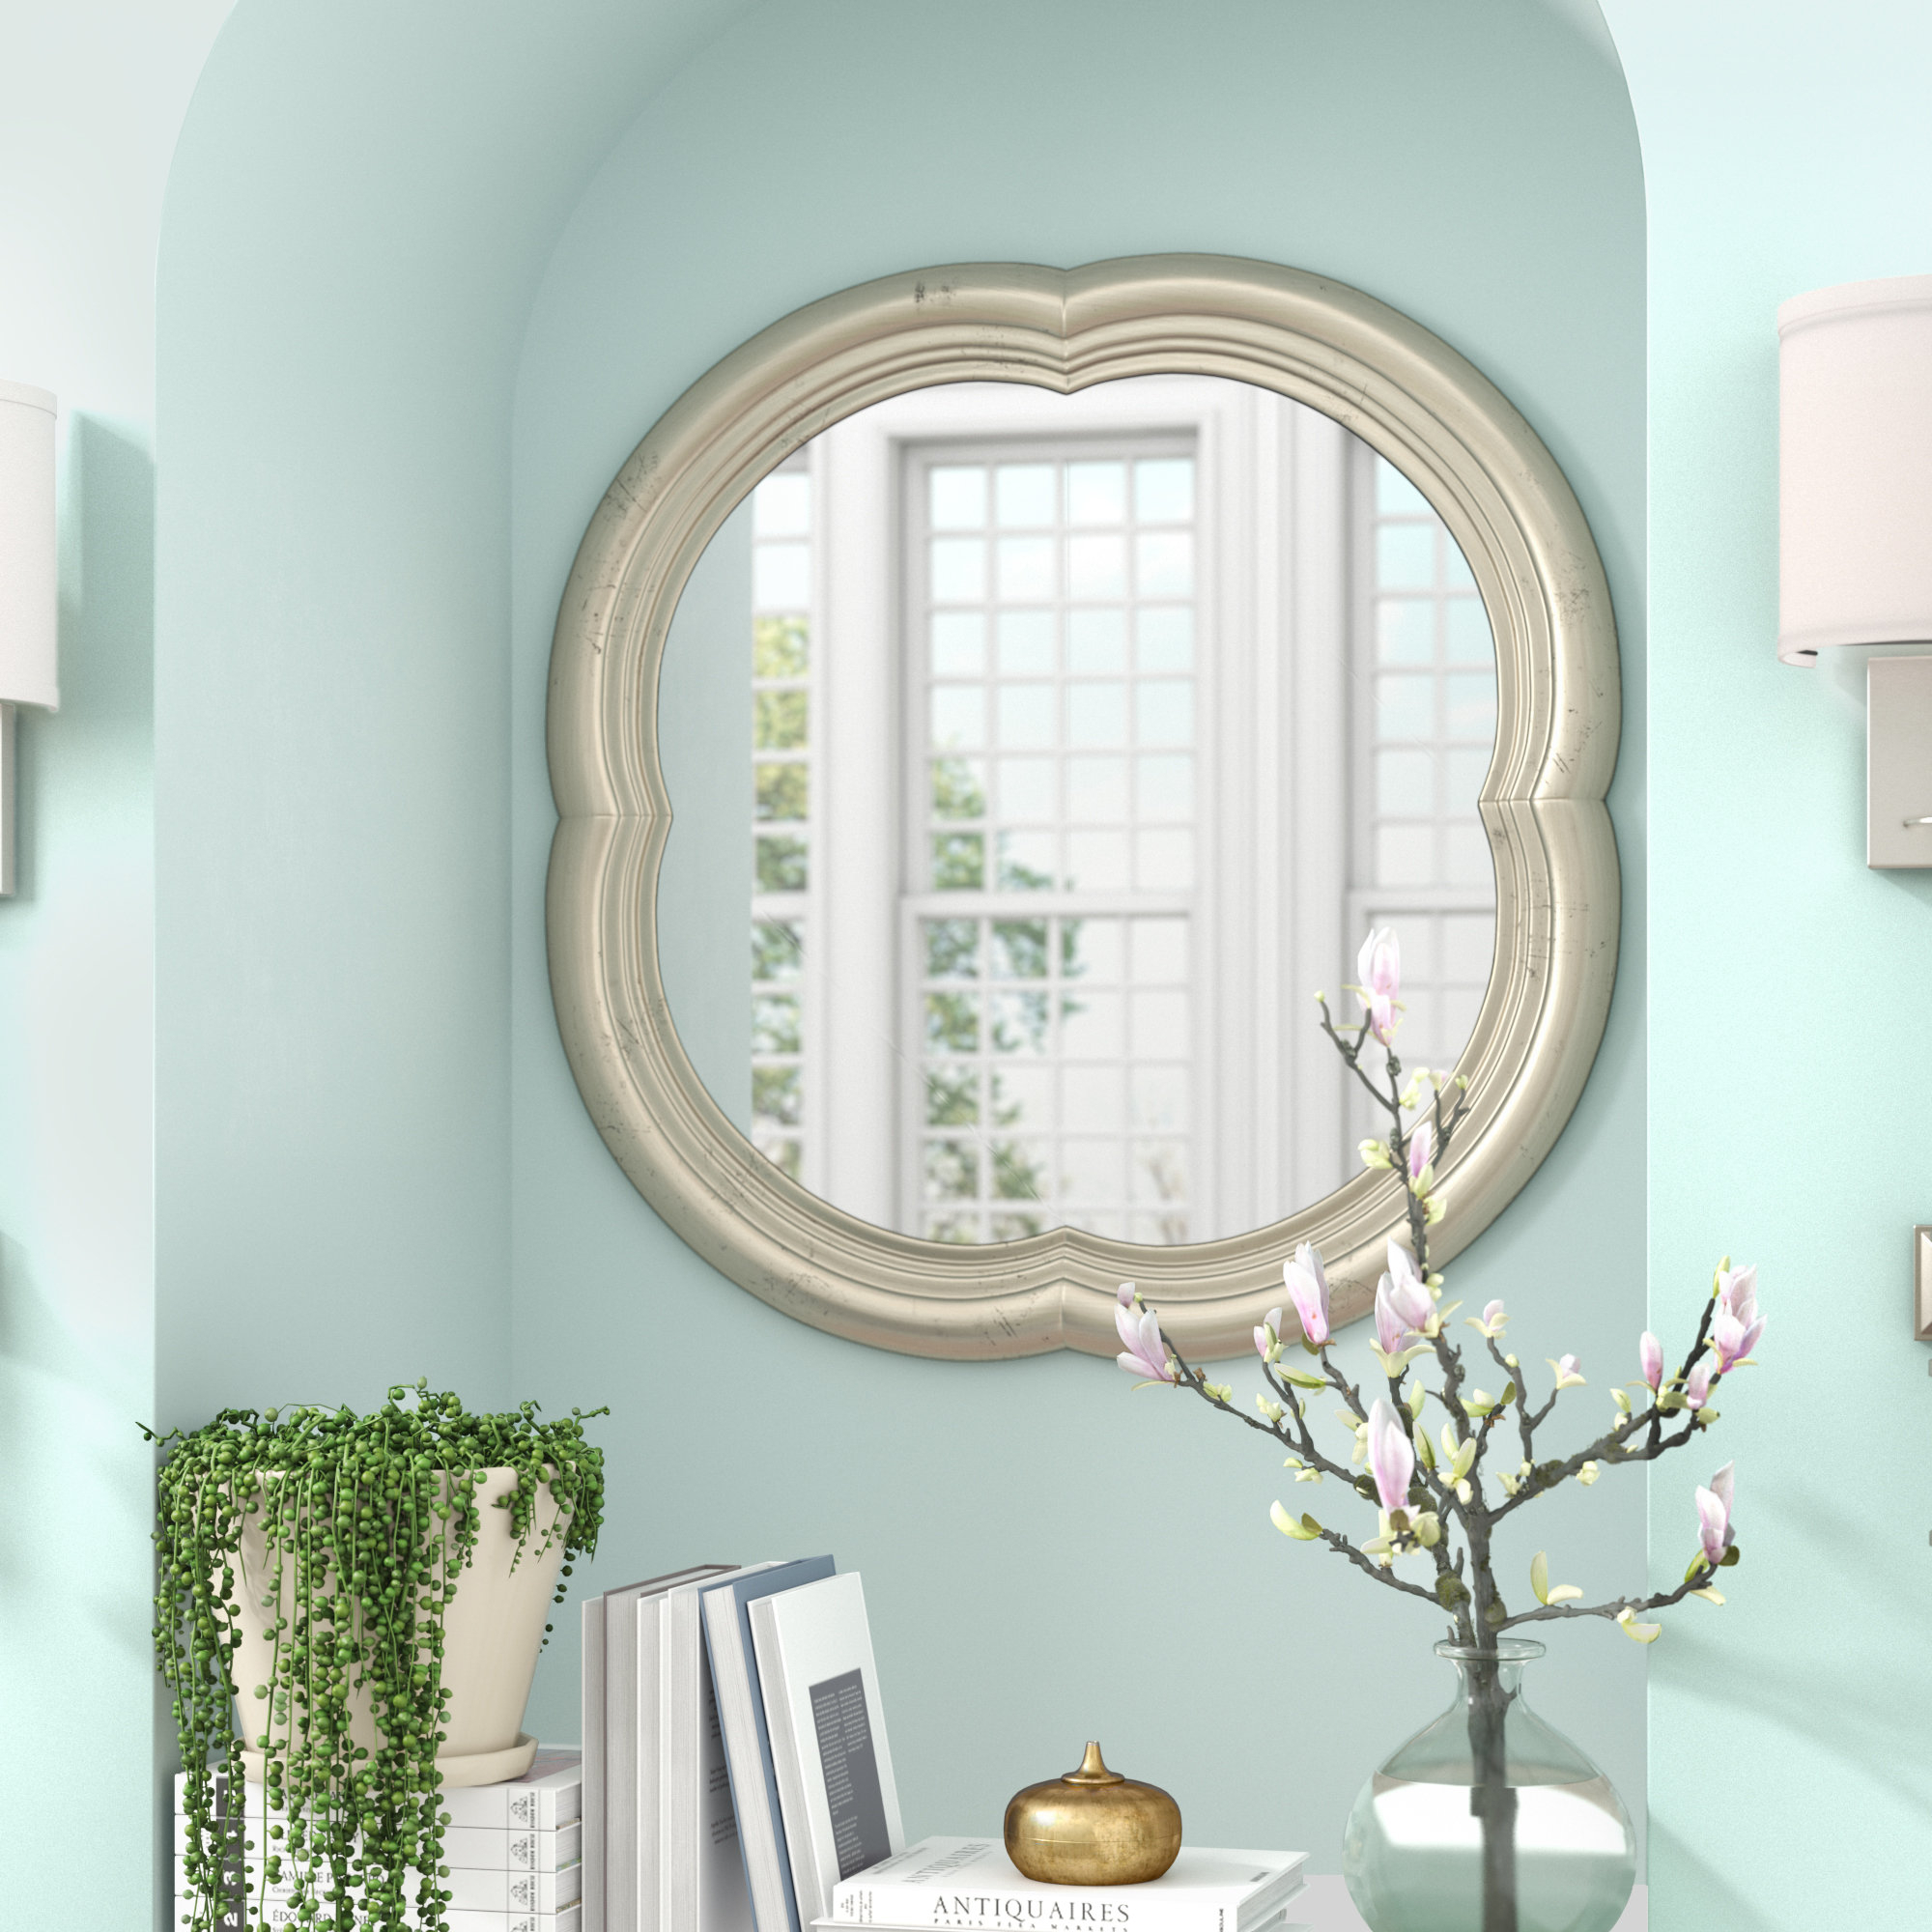 Broadmeadow Accent Wall Mirror | Wayfair In Hussain Tile Accent Wall Mirrors (Image 6 of 20)